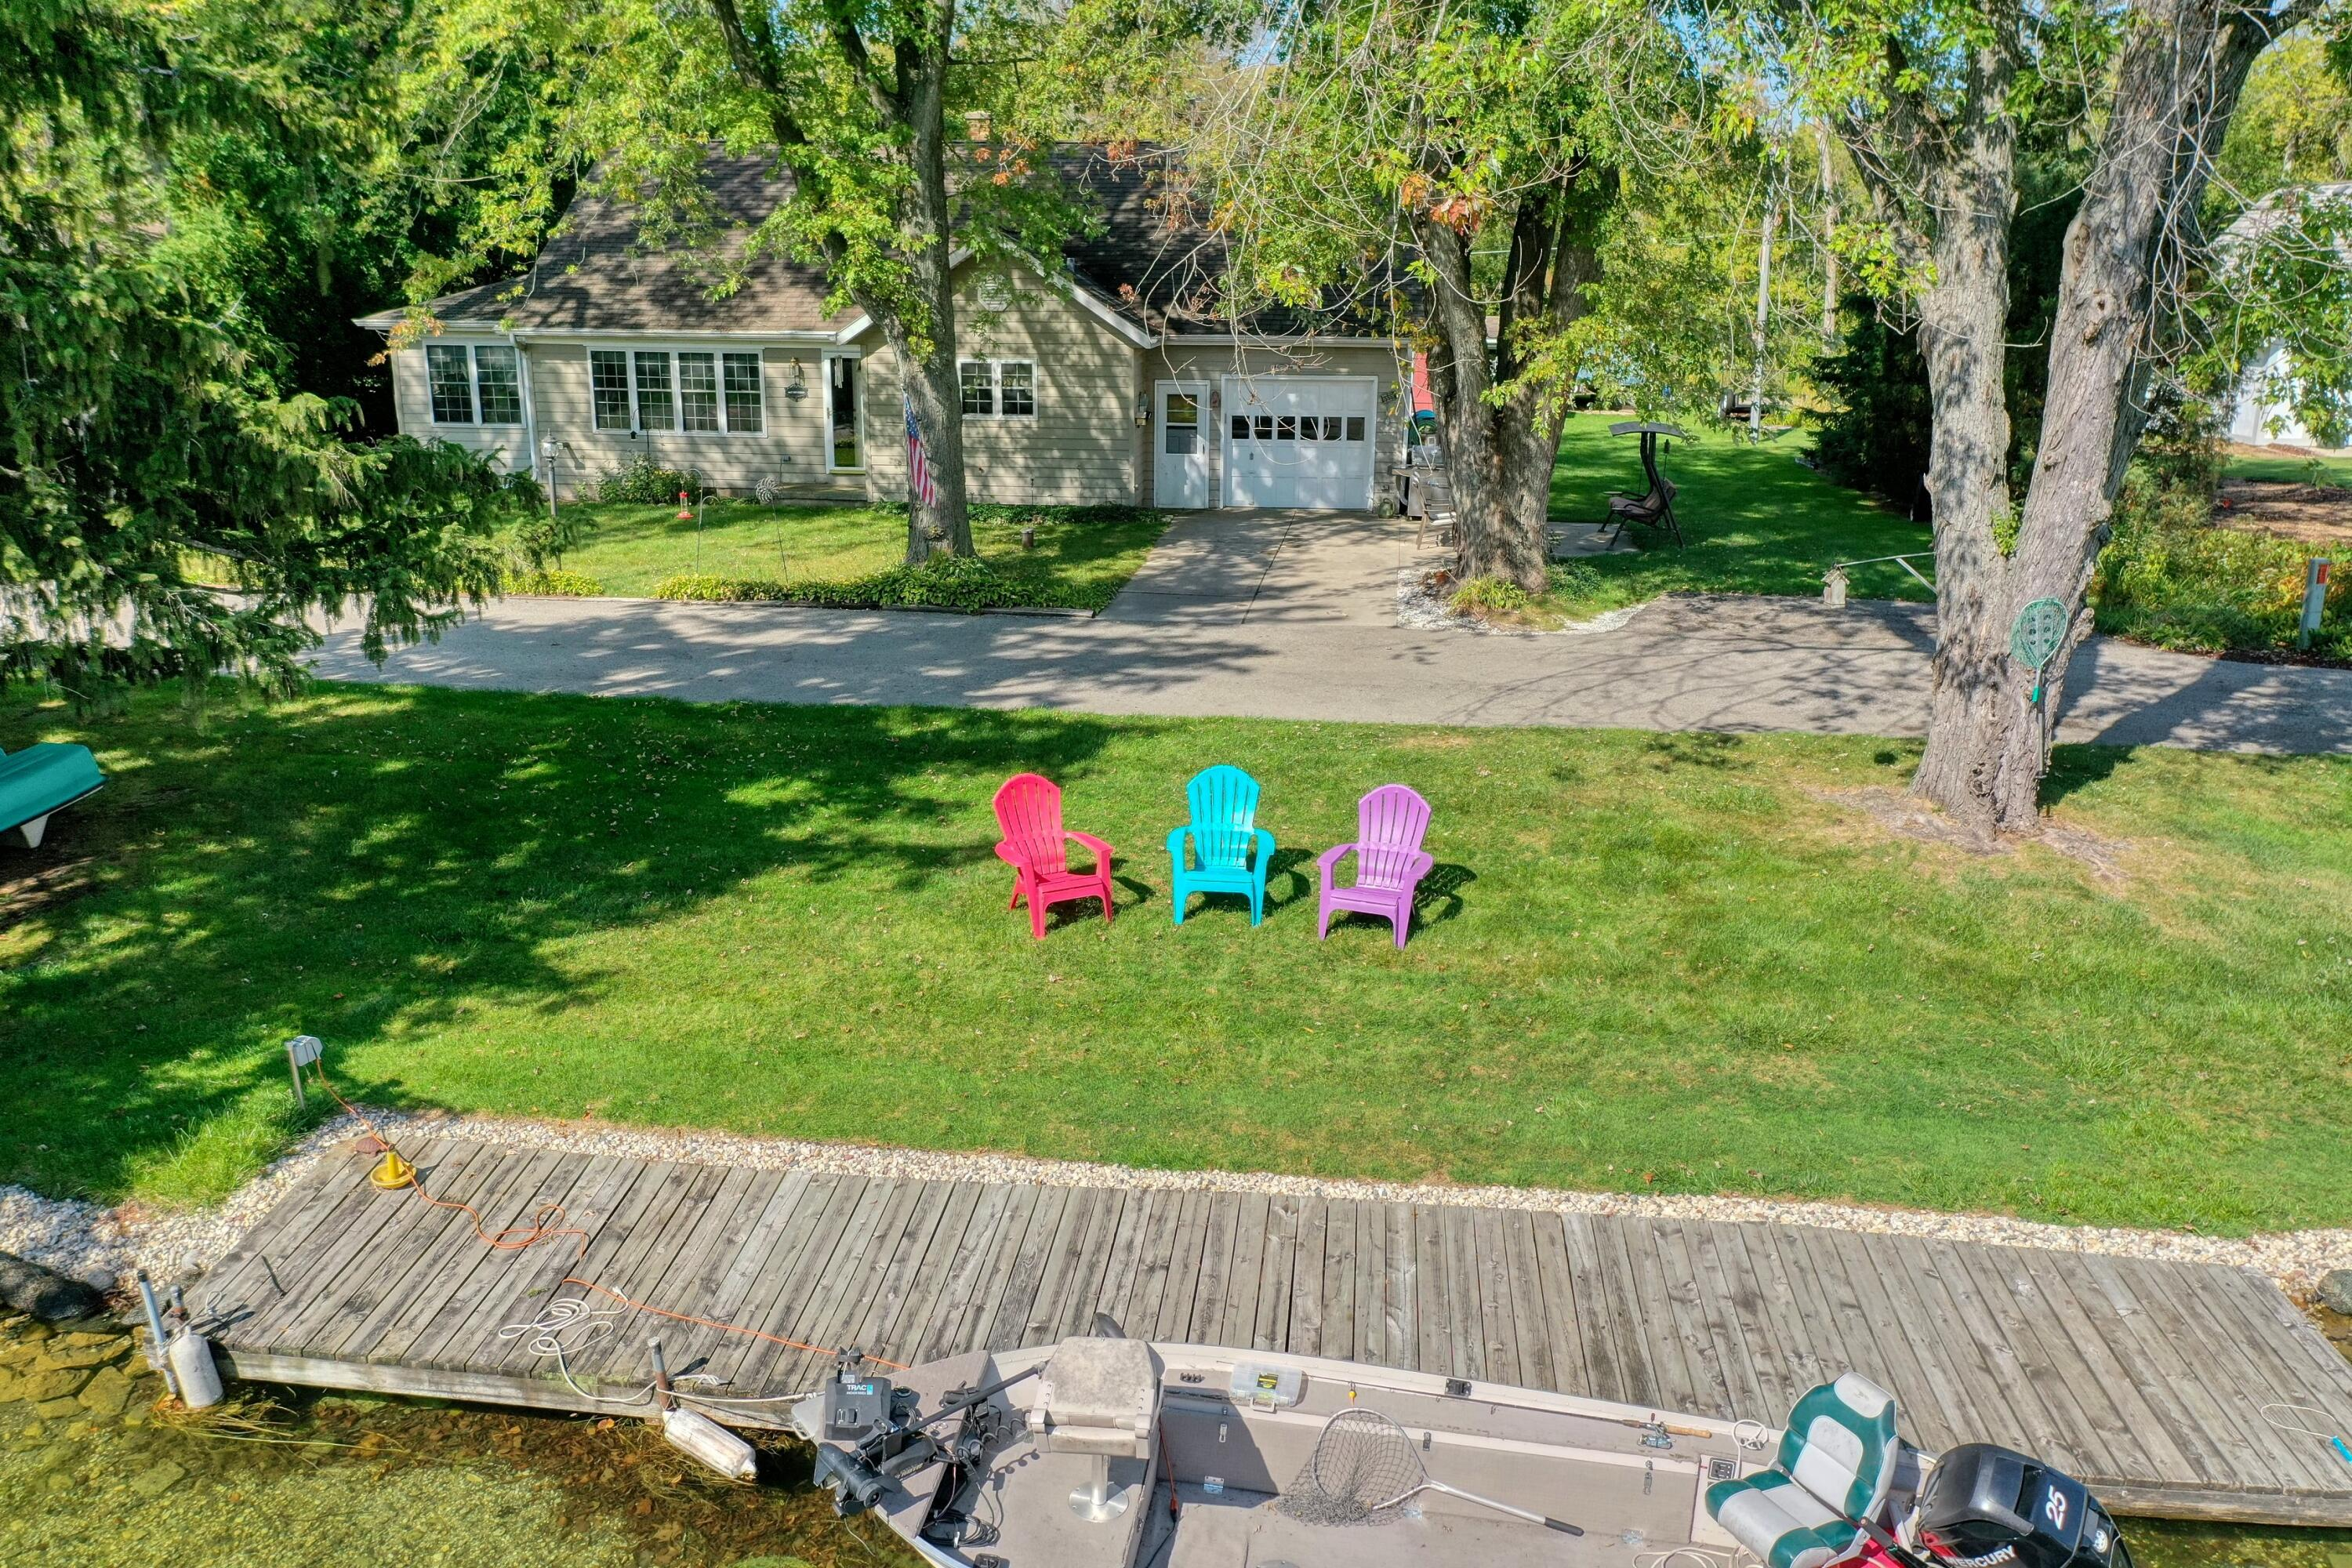 4657 River Rd, Oconomowoc Lake, Wisconsin 53066, 3 Bedrooms Bedrooms, 8 Rooms Rooms,1 BathroomBathrooms,Single-Family,For Sale,River Rd,1765913